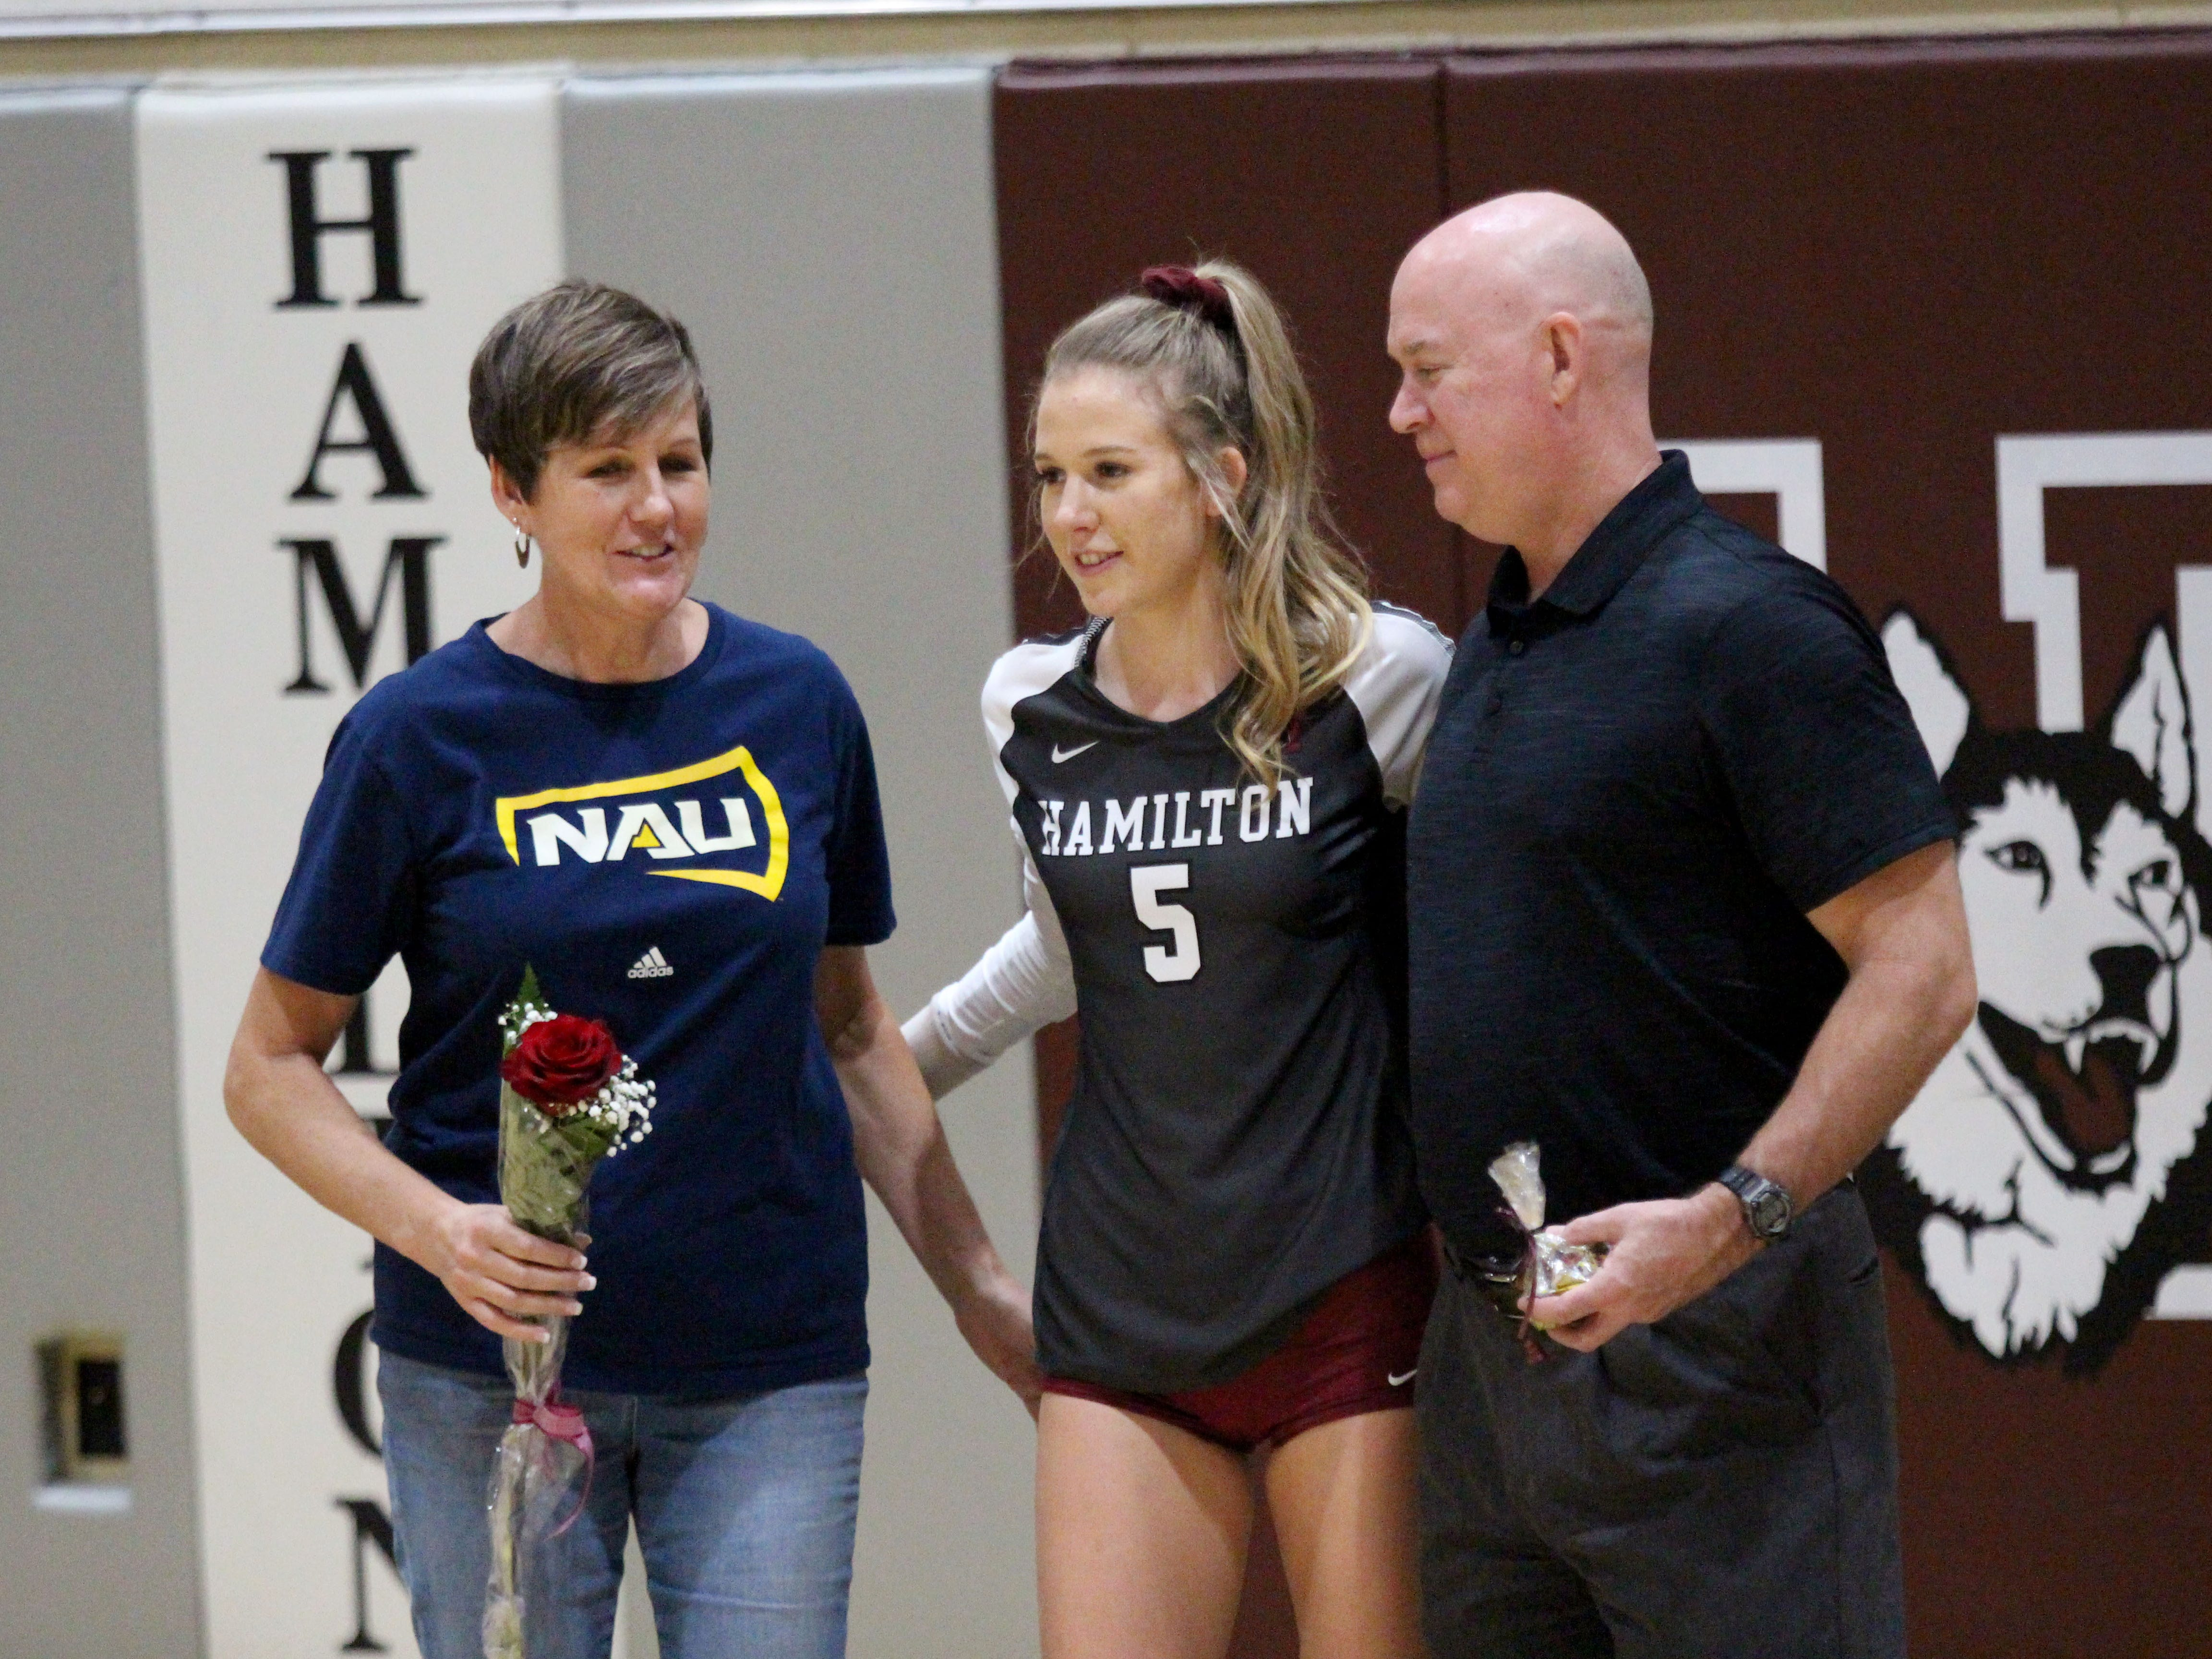 Hamilton's Taylor Jacobsen takes a photo with her parents on senior night before the team's game against Xavier College Prep on Tuesday night at Hamilton High School on Oct. 23, 2018.